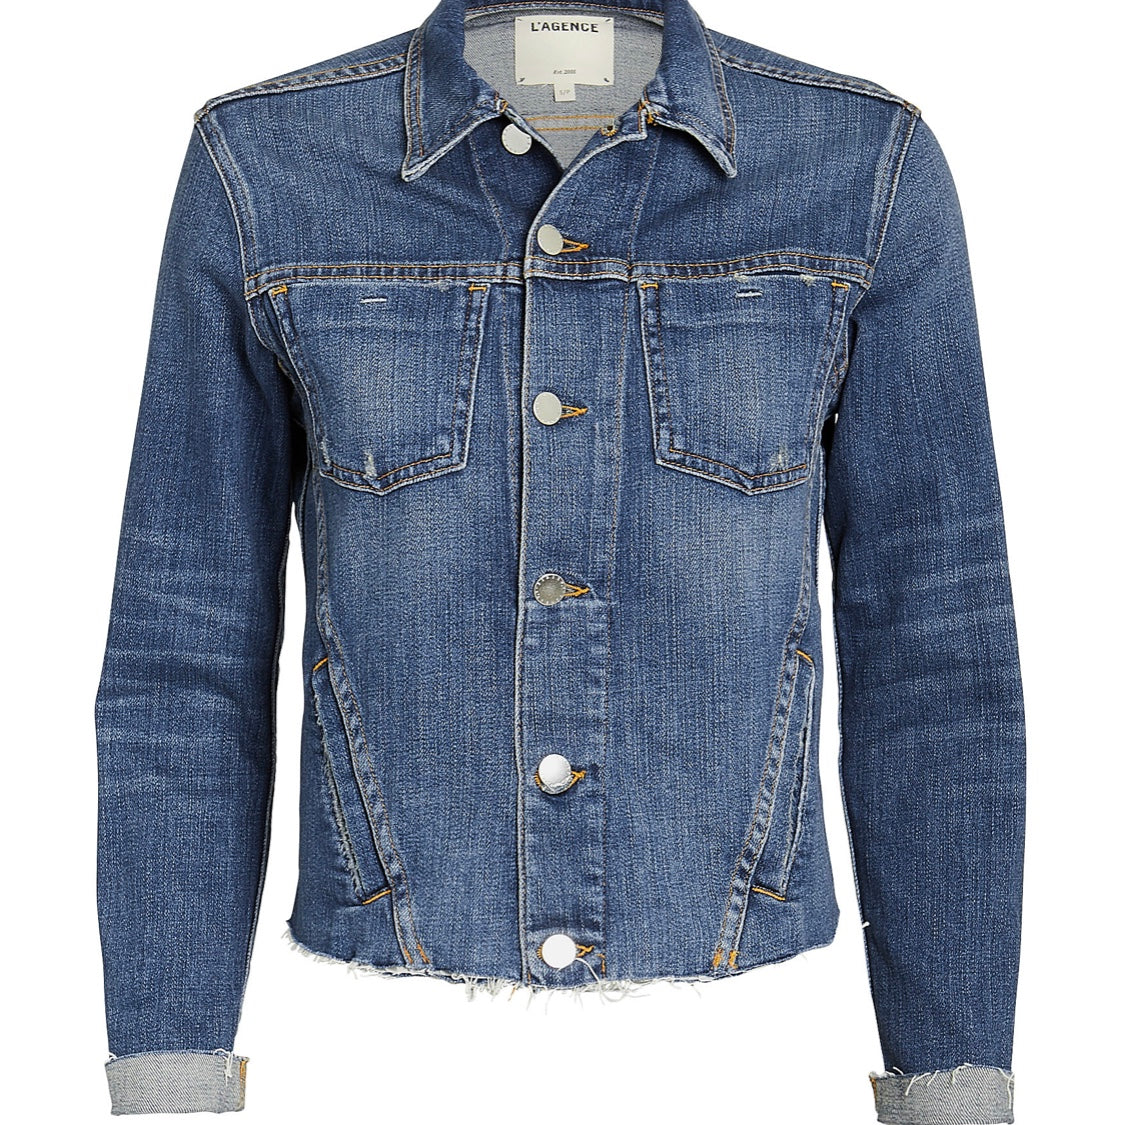 Everyone needs a perfect jean jacket in their closet!